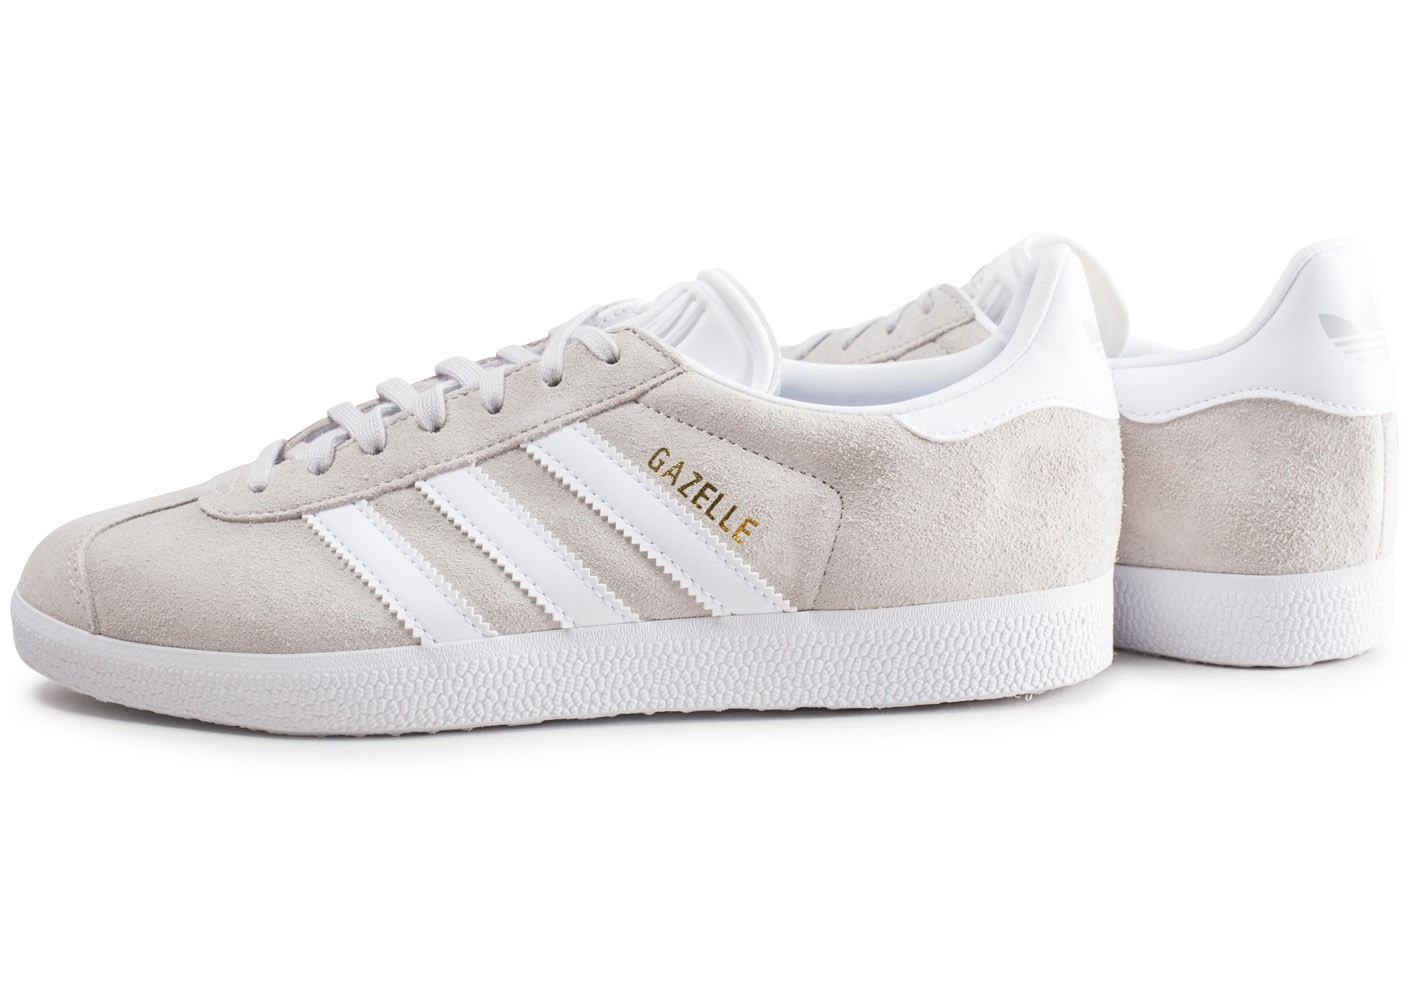 sale online fantastic savings exquisite style Gris Chausport Homme Gazelle Baskets Clair Chaussures Adidas ...